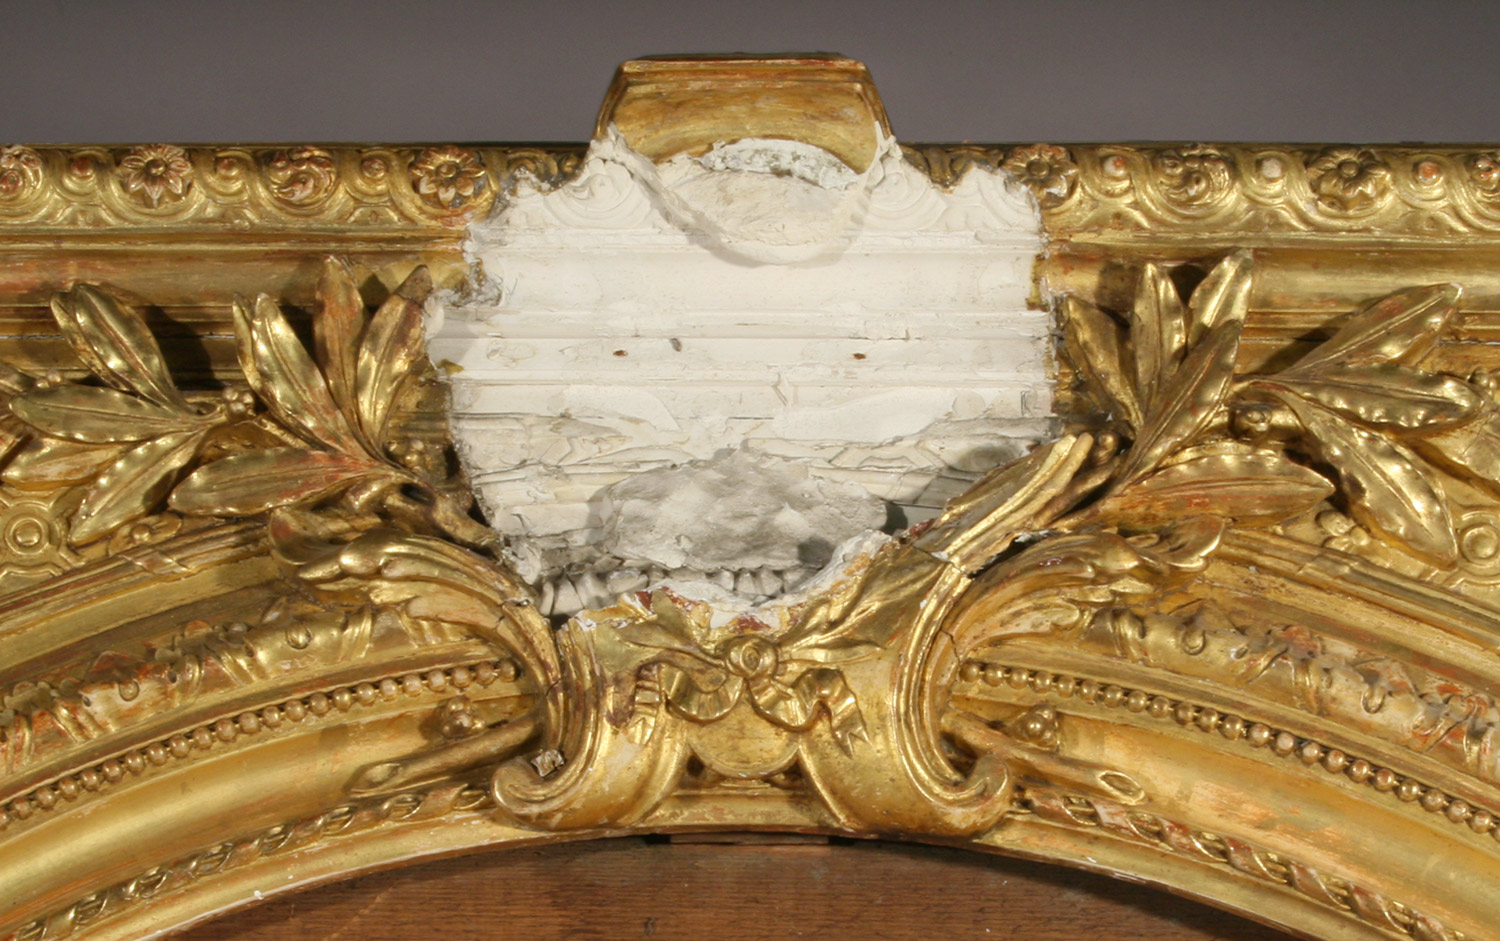 Giltwood frame mirror detail before conservation